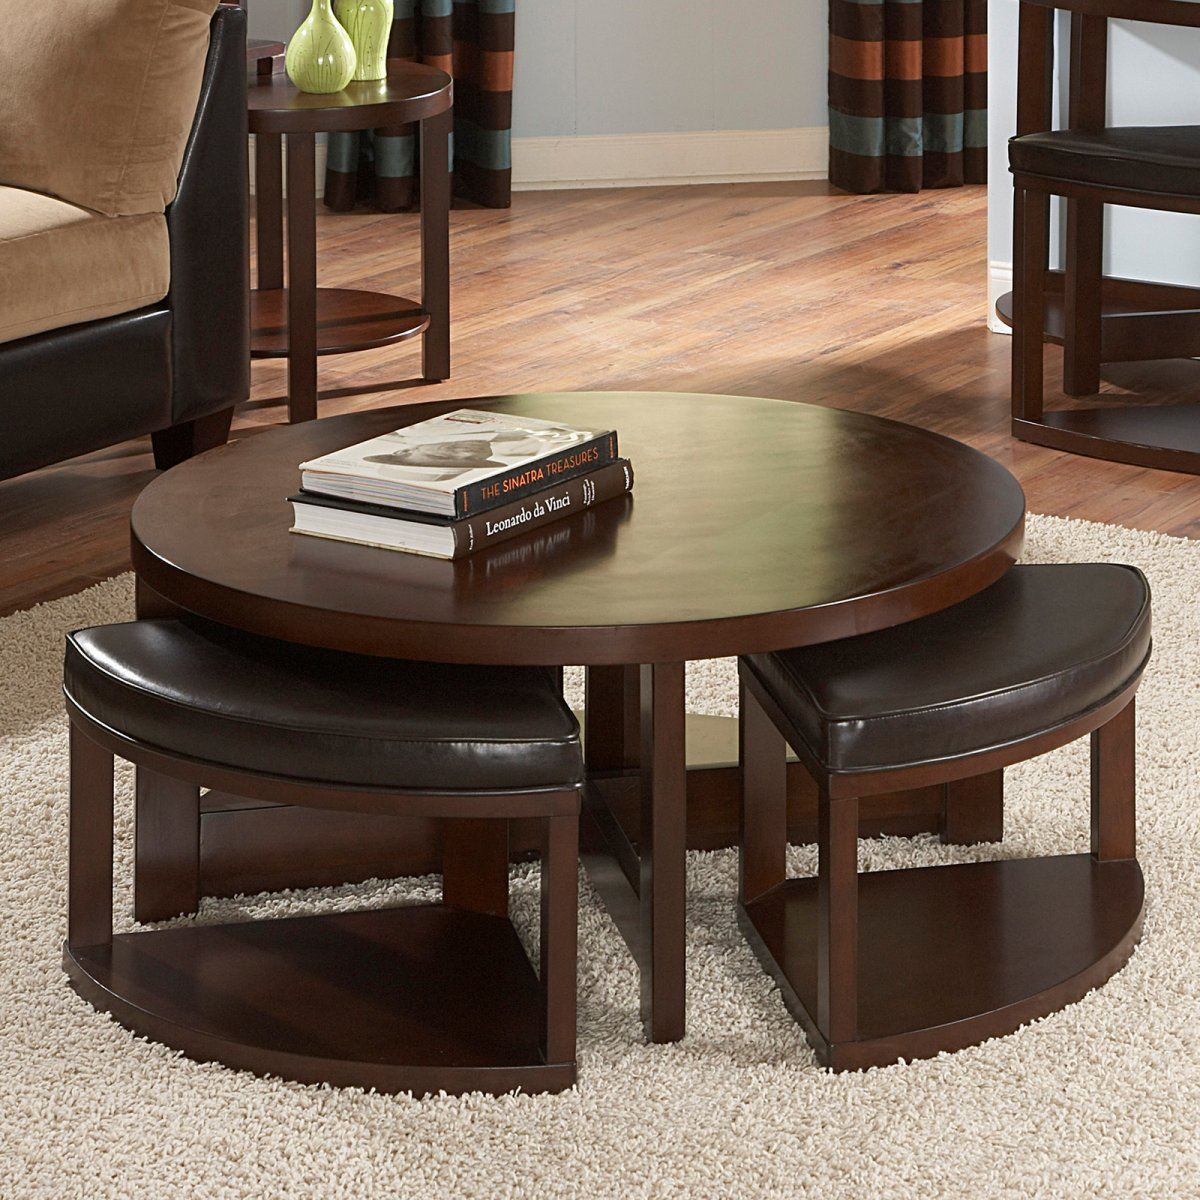 Beautiful Coffee Table Ottoman Sets For Living Room Modern Living Room  Design With Round Cocktail Round10 Inspirations of Round Coffee Table Sets for Sale. Living Room Table Sets. Home Design Ideas